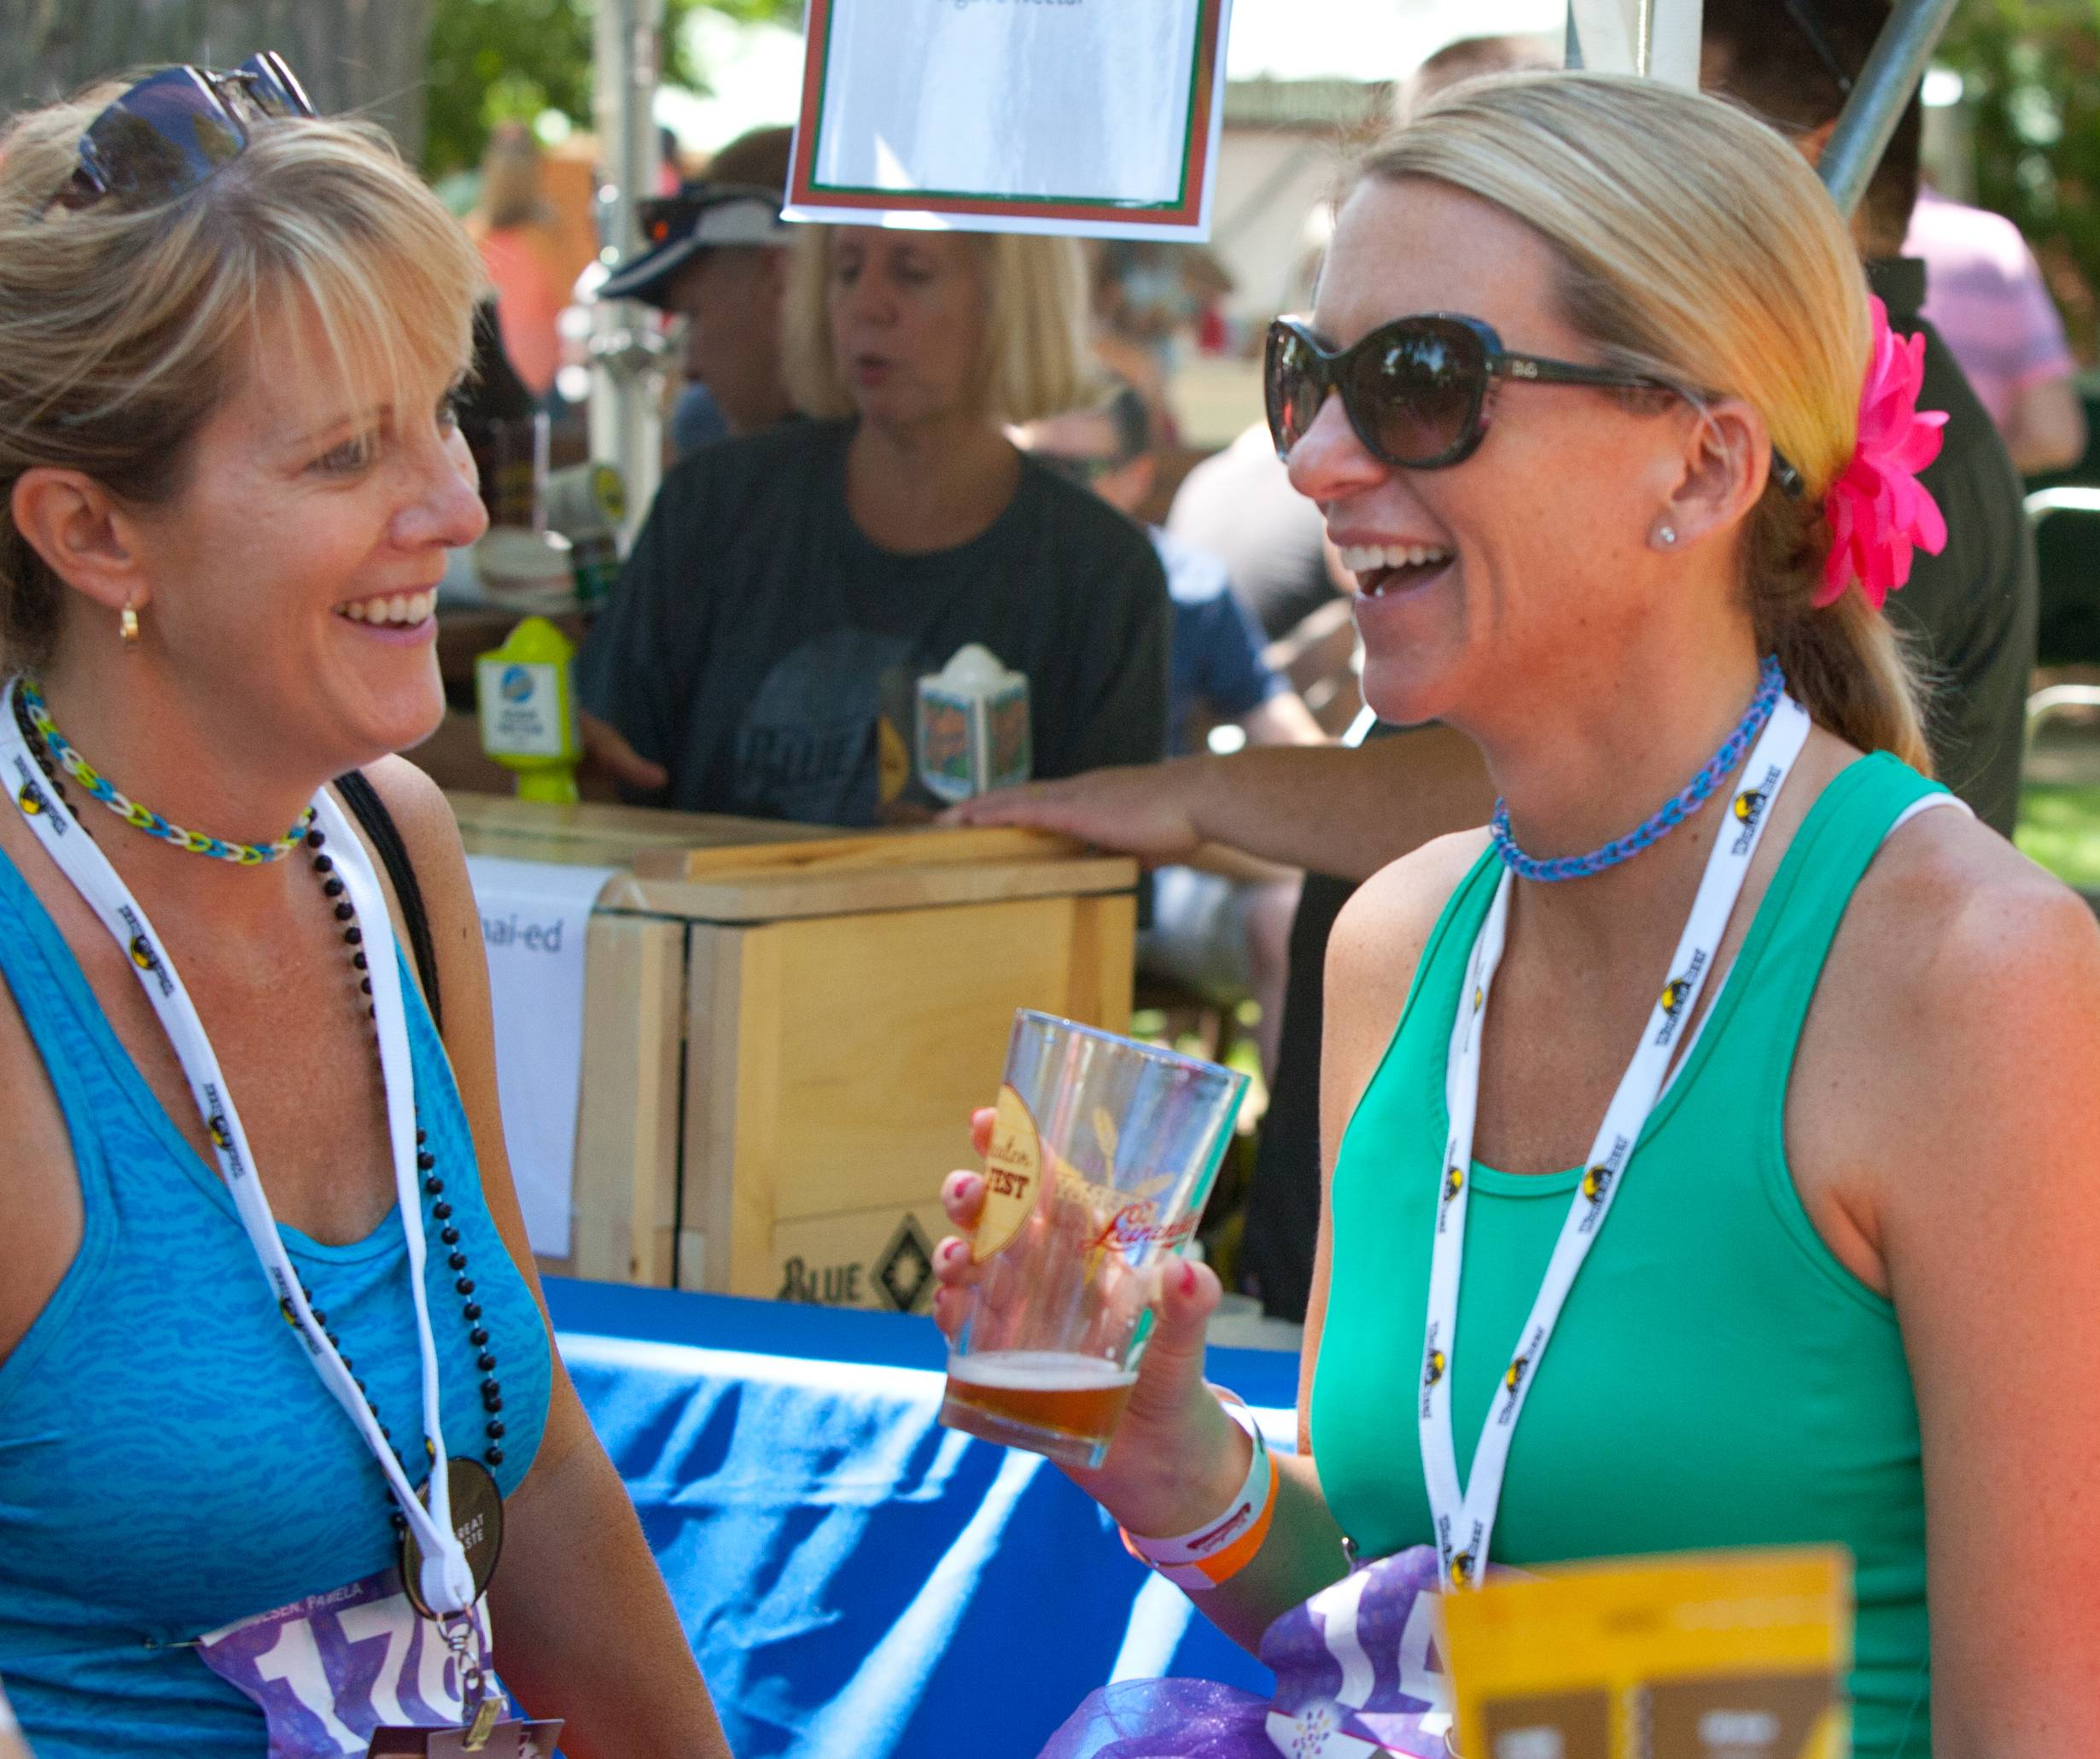 Beer fans will get a chance to sample all sorts of ales during Wheaton's fourth annual Brew Fest Aug. 2 in Memorial Park.